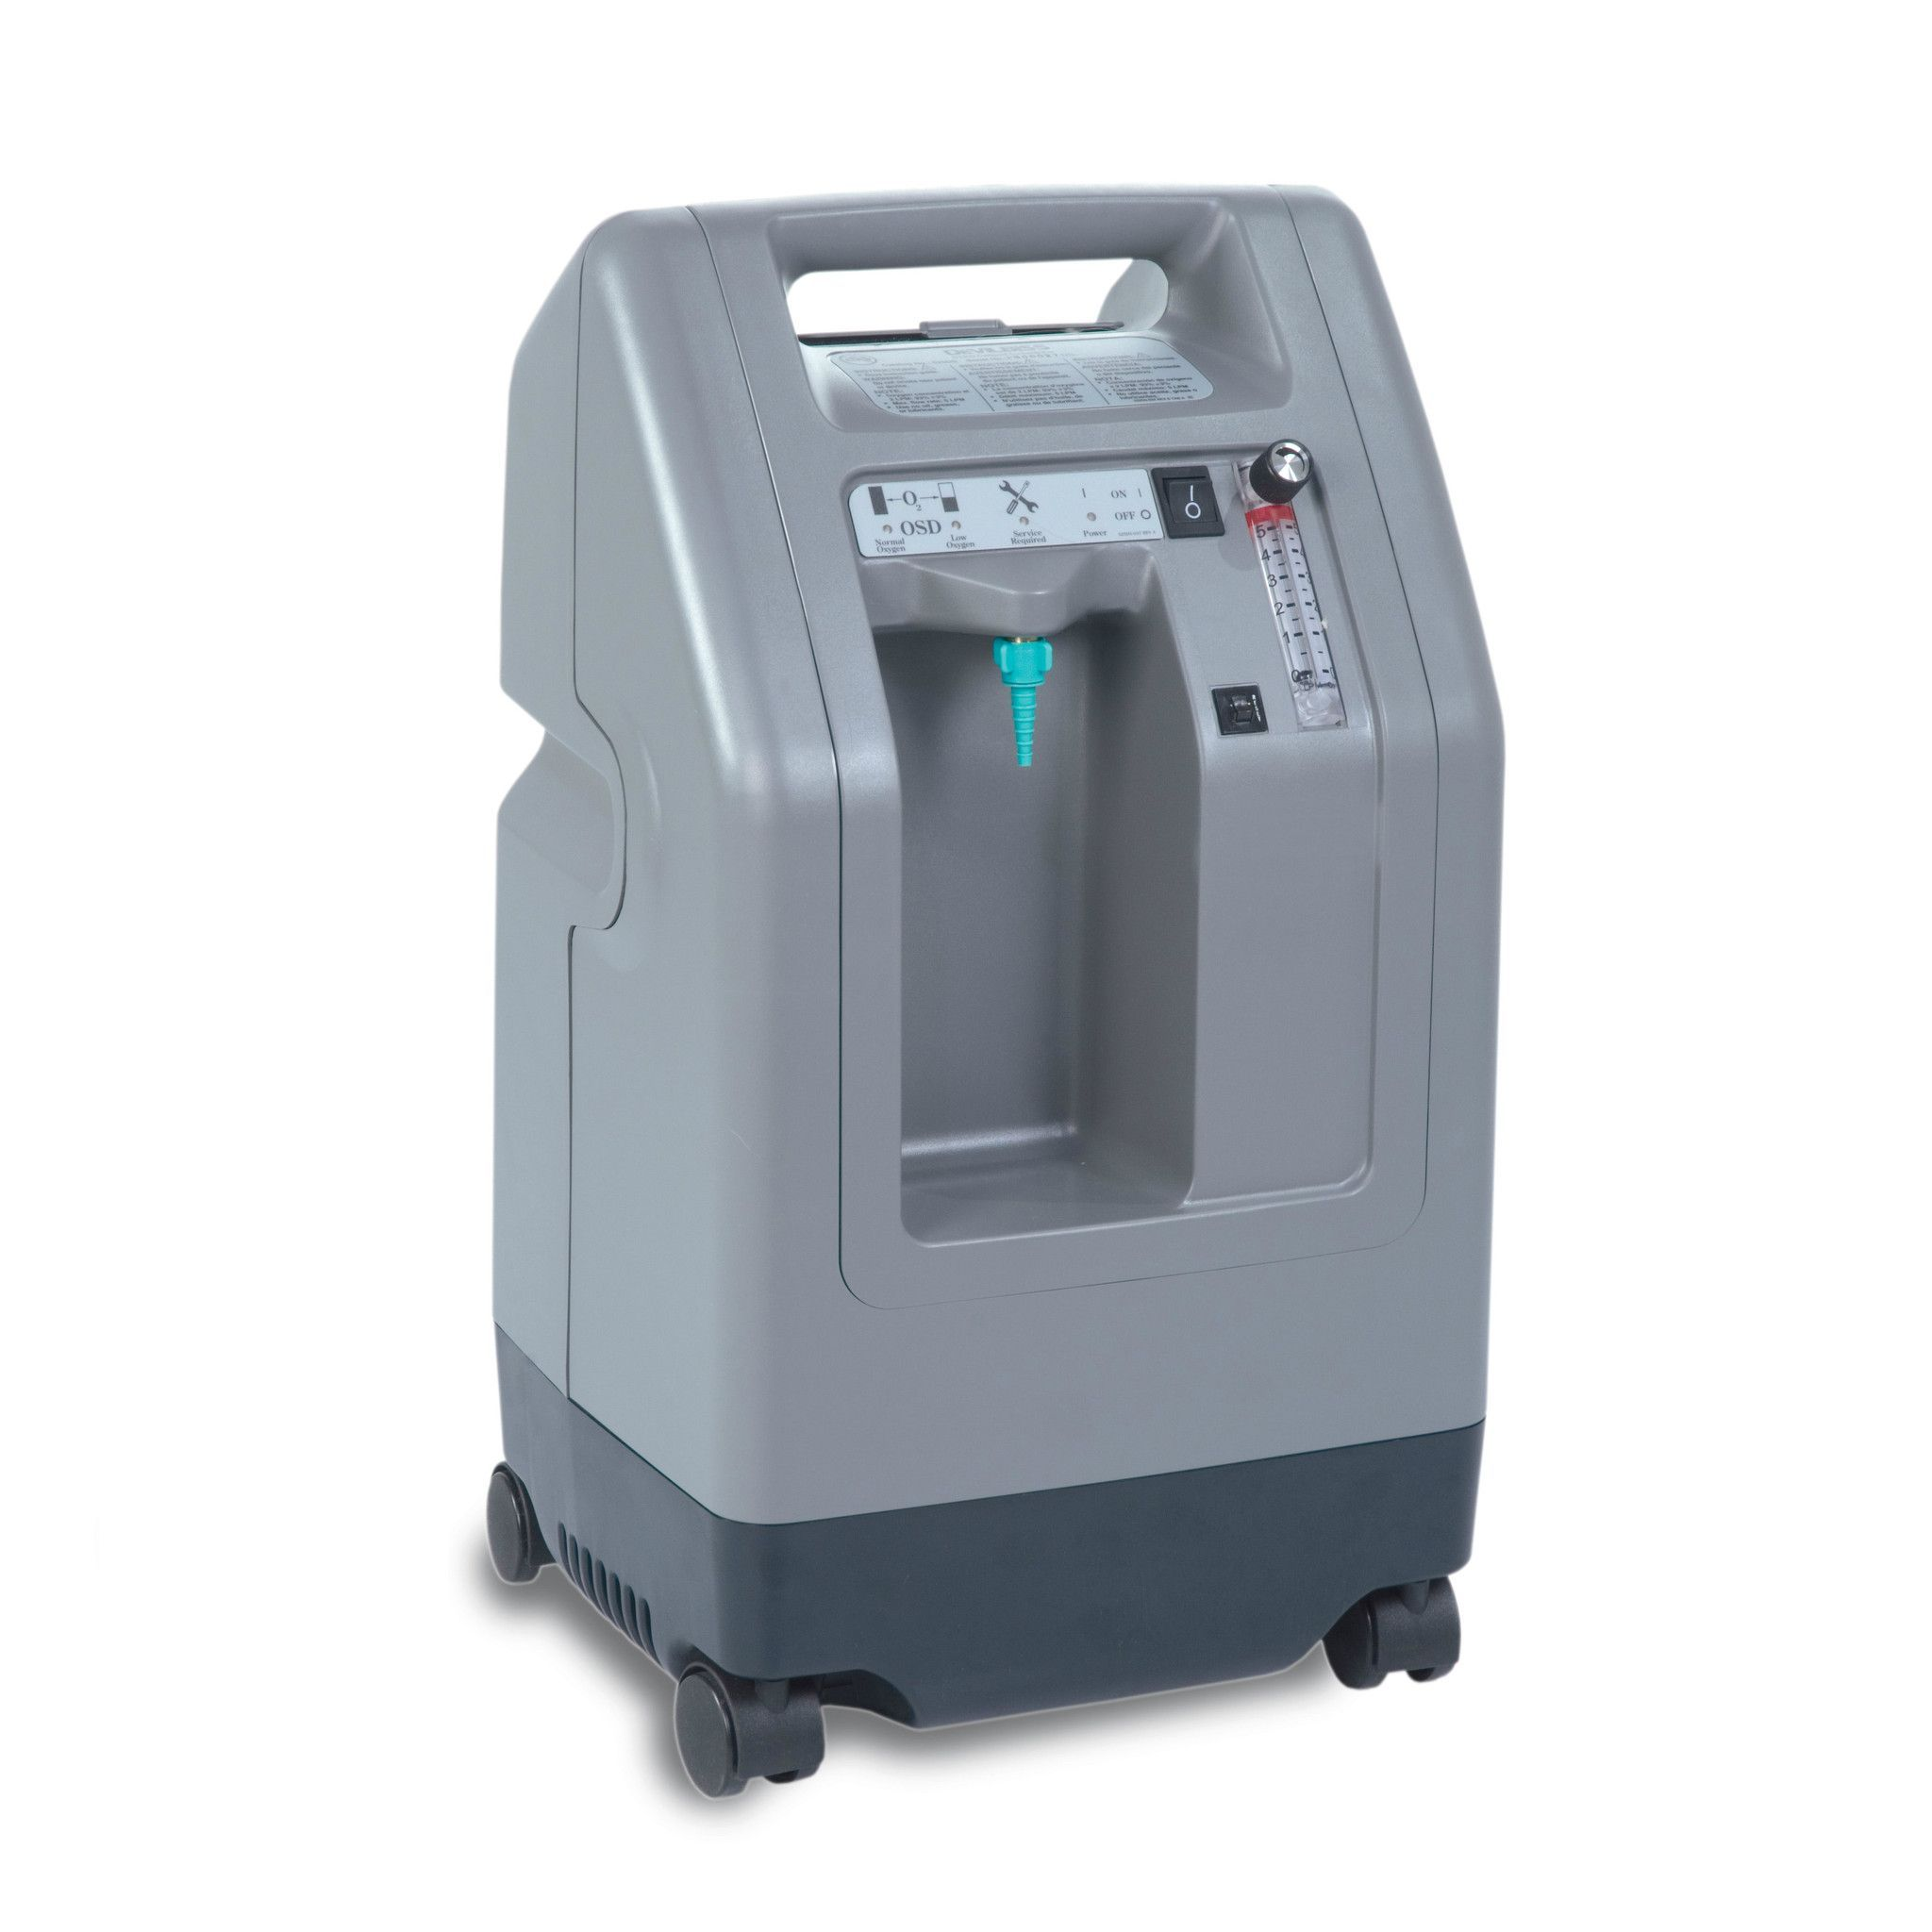 compact oxygen concentrator 5 liter products pinterest